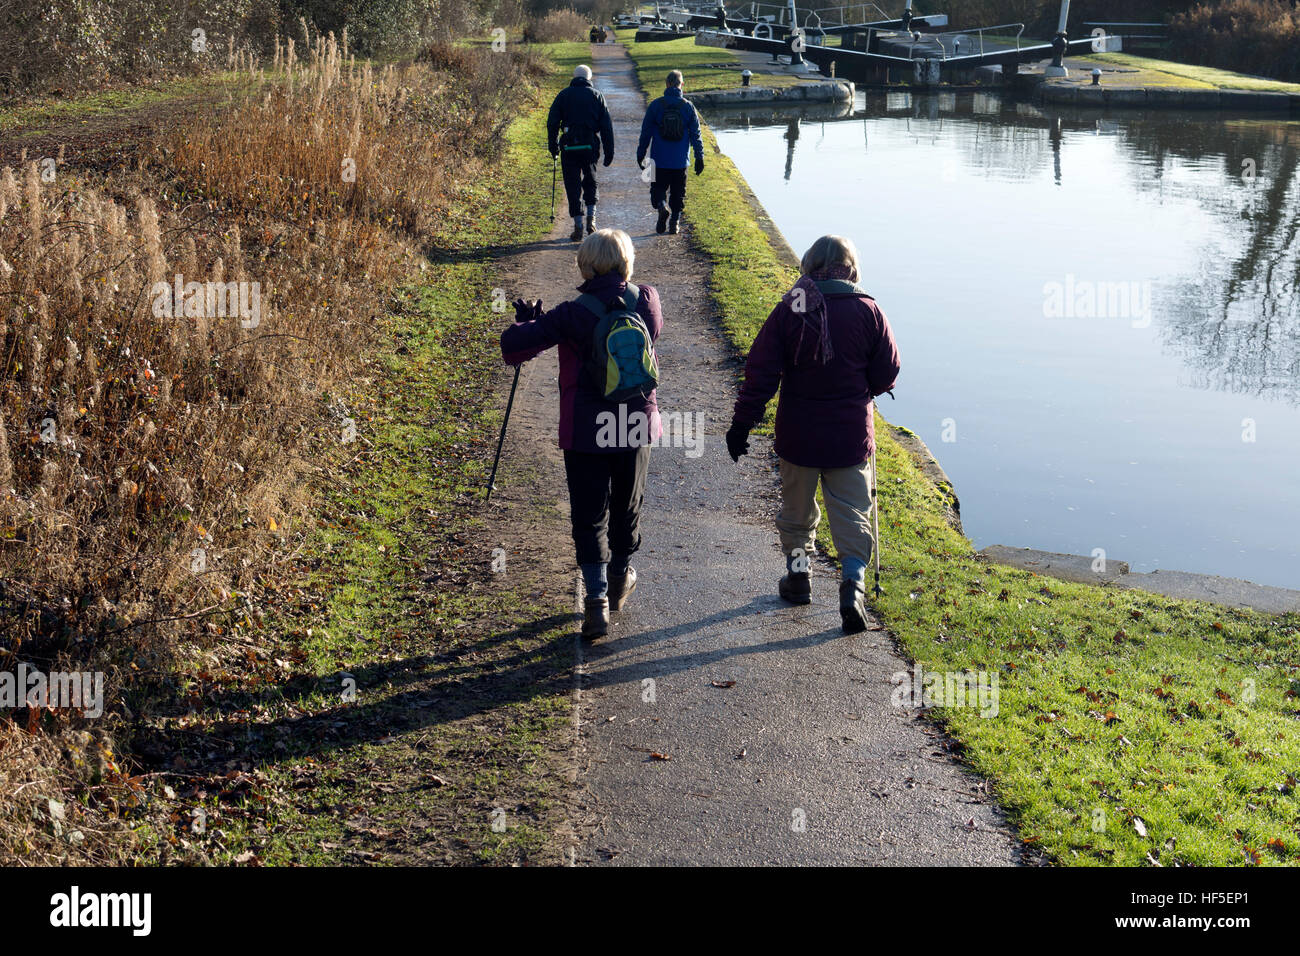 Walkers on the Grand Union Canal towpath in winter, Hatton Locks, Warwickshire, UK - Stock Image